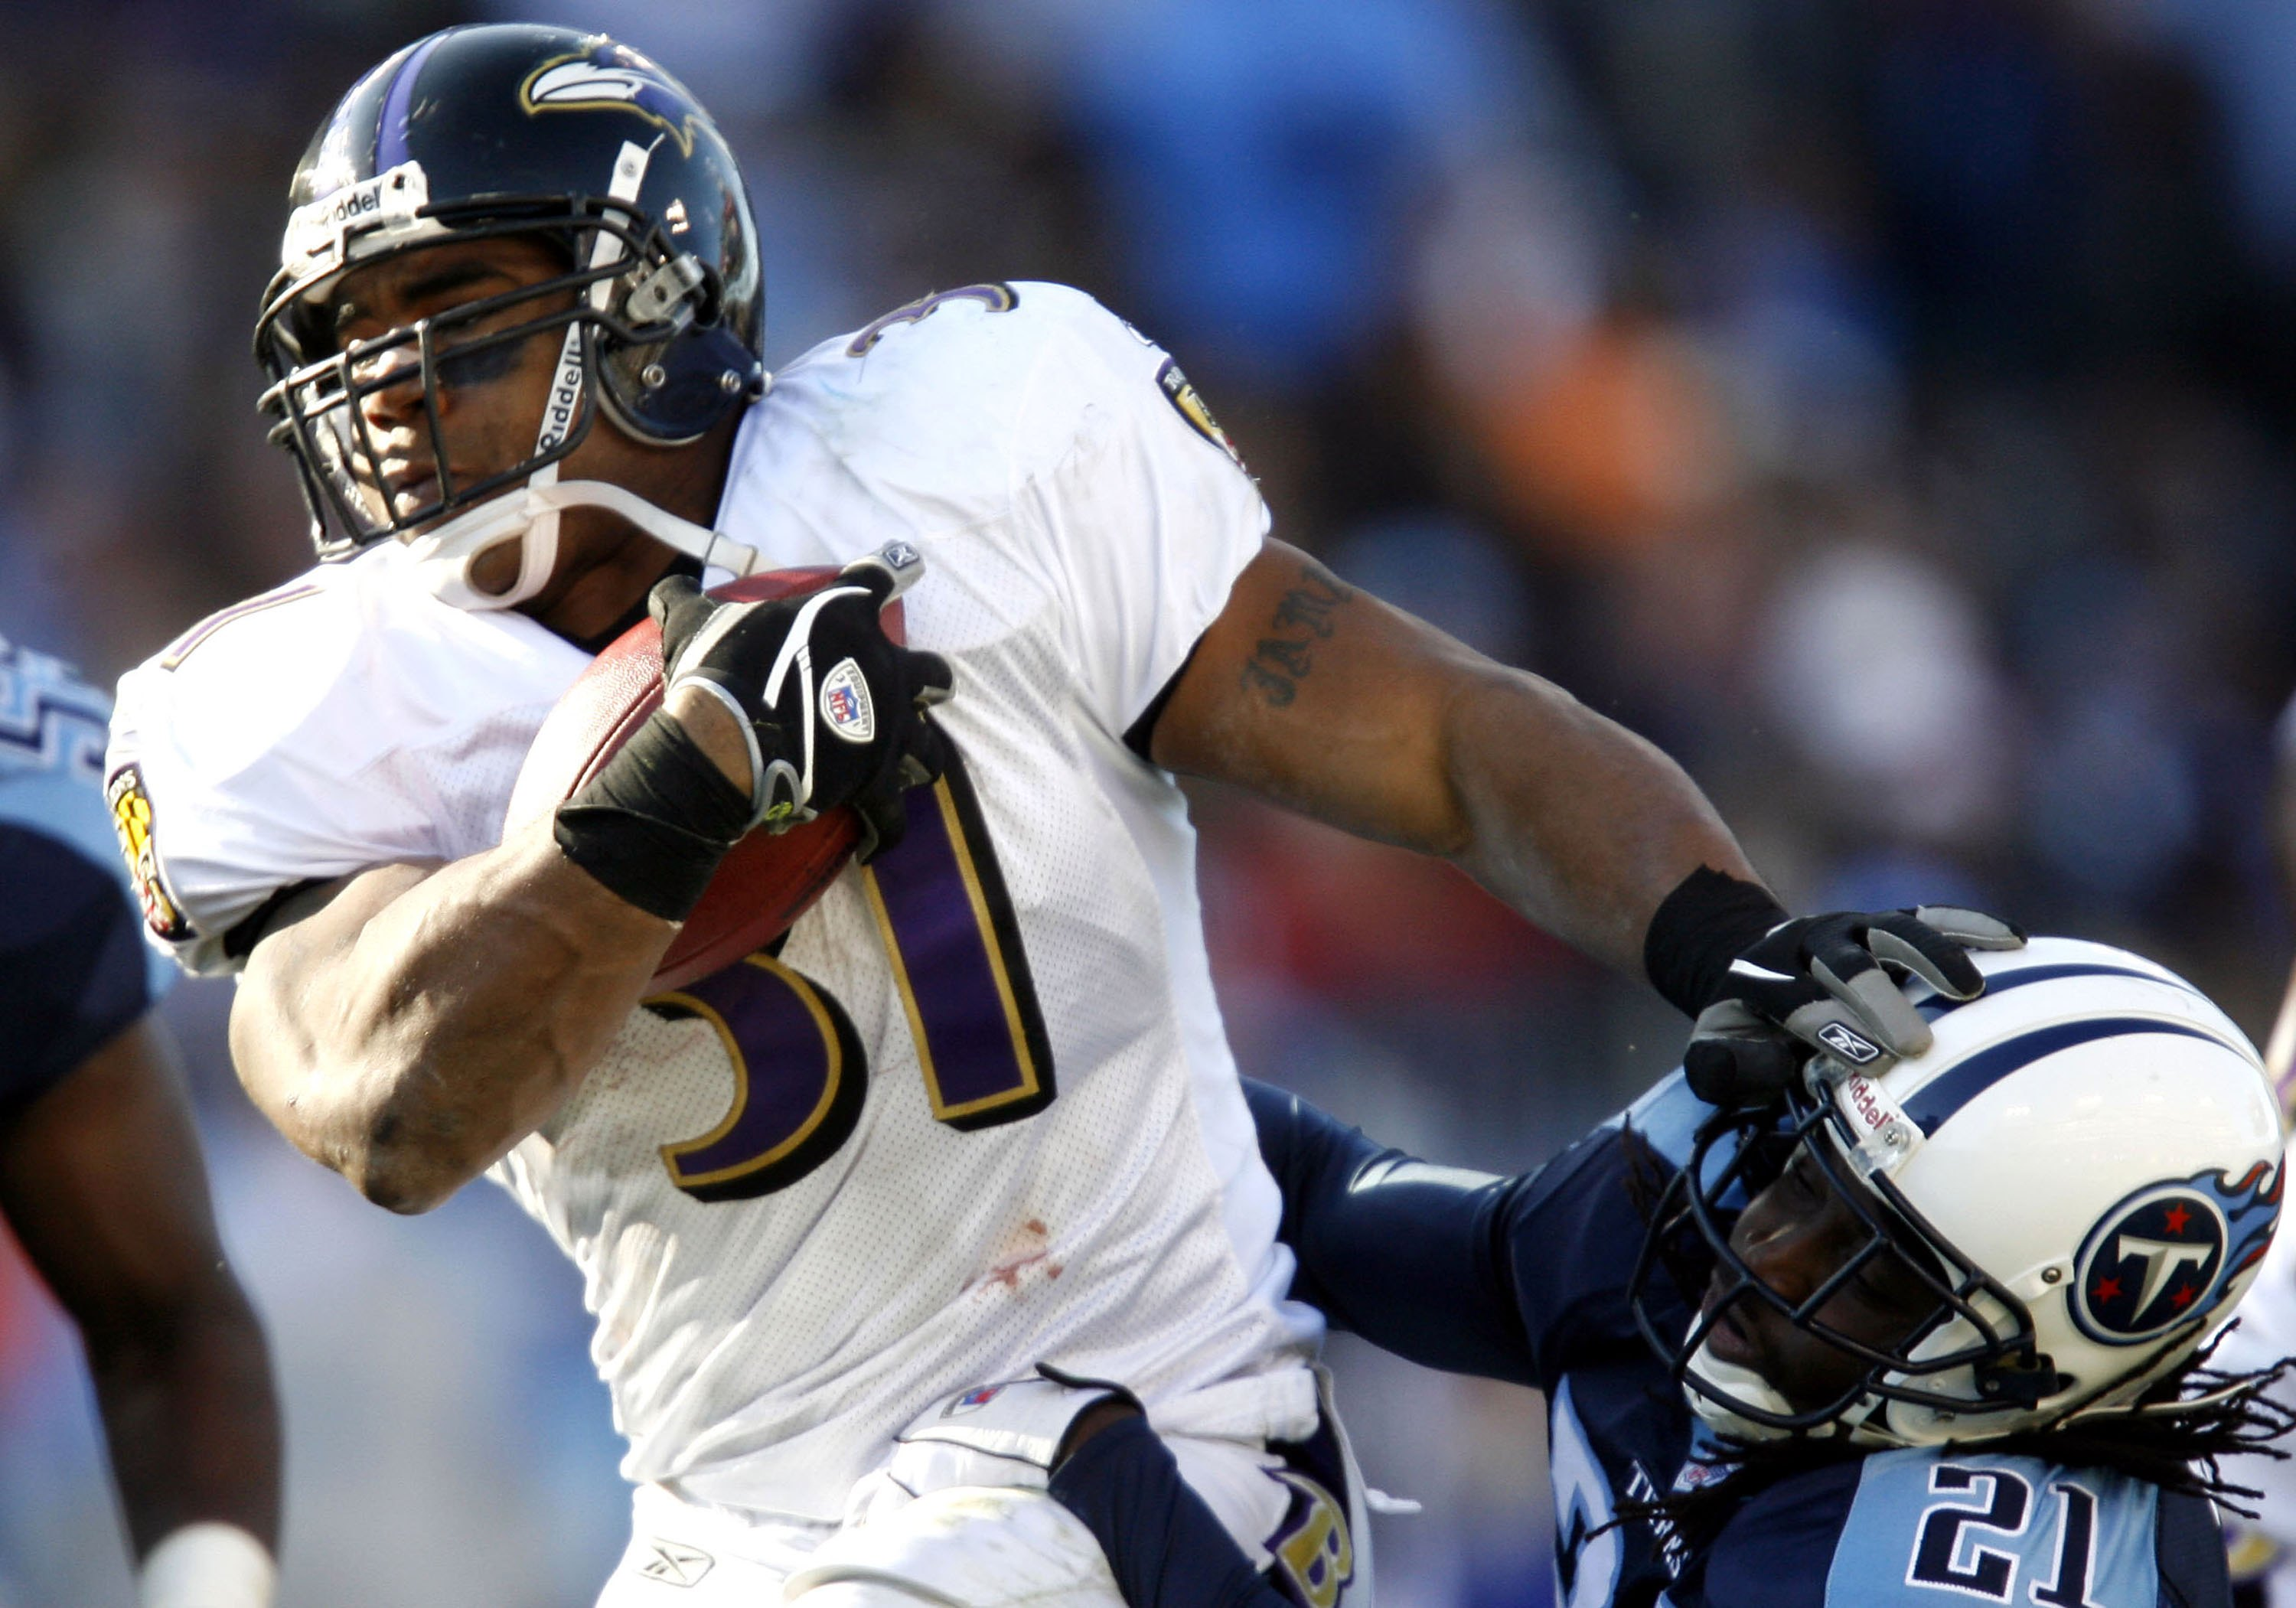 Former Baltimore Ravens running back Jamal Lewis' career wasn't the same after he served prison time in 2004 for his role in a drug ring.